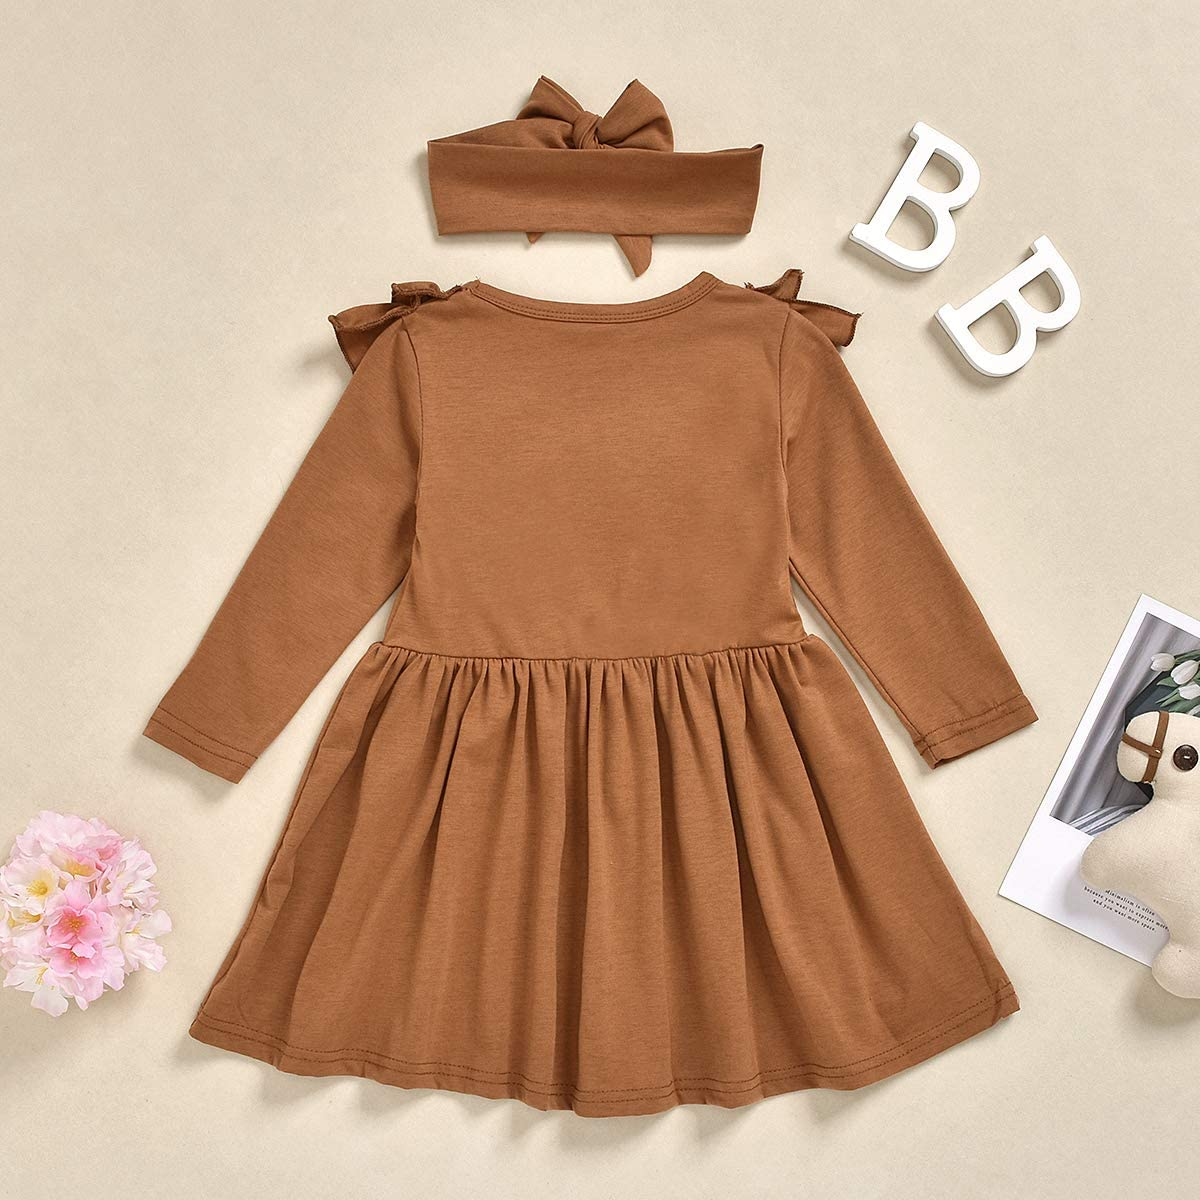 CM C/&M WODRO Toddler Christmas Dresses Fall Winter Baby Girl Dress Outfit Clothes Cotton Ruffled Pullover Dress